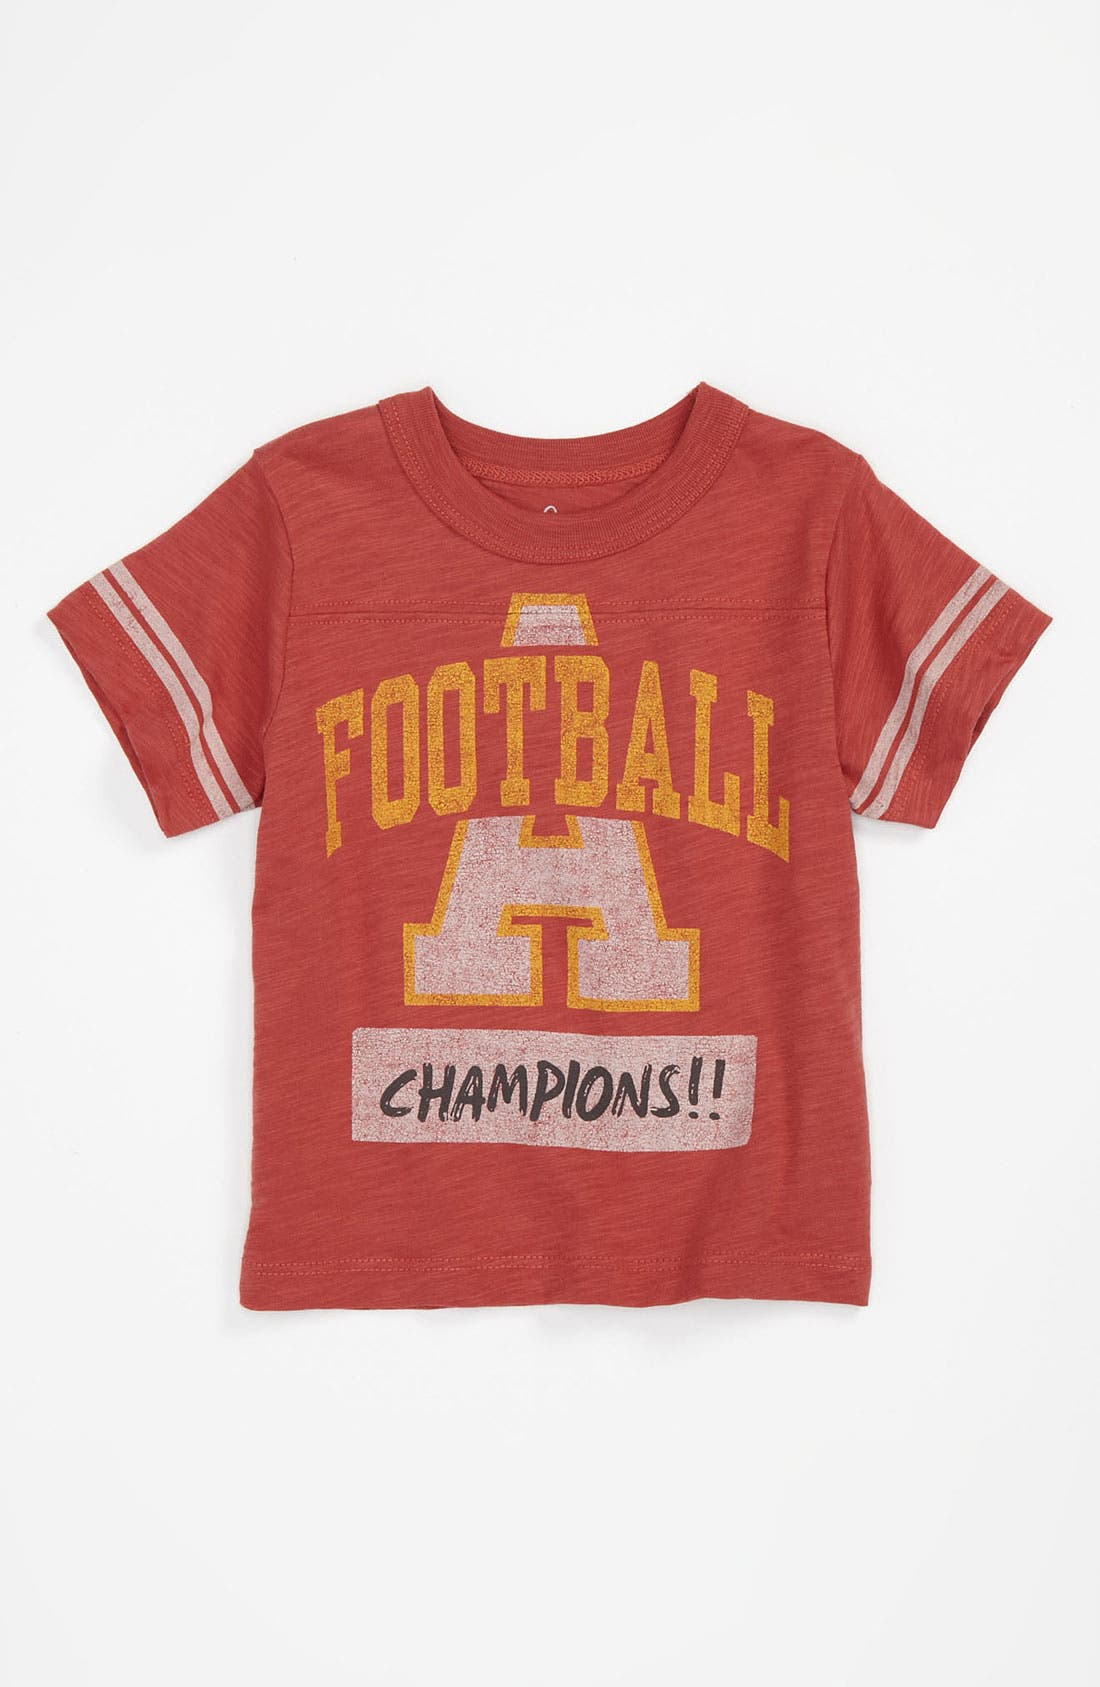 Alternate Image 1 Selected - Peek 'Football Champs' Jersey T-Shirt (Infant)